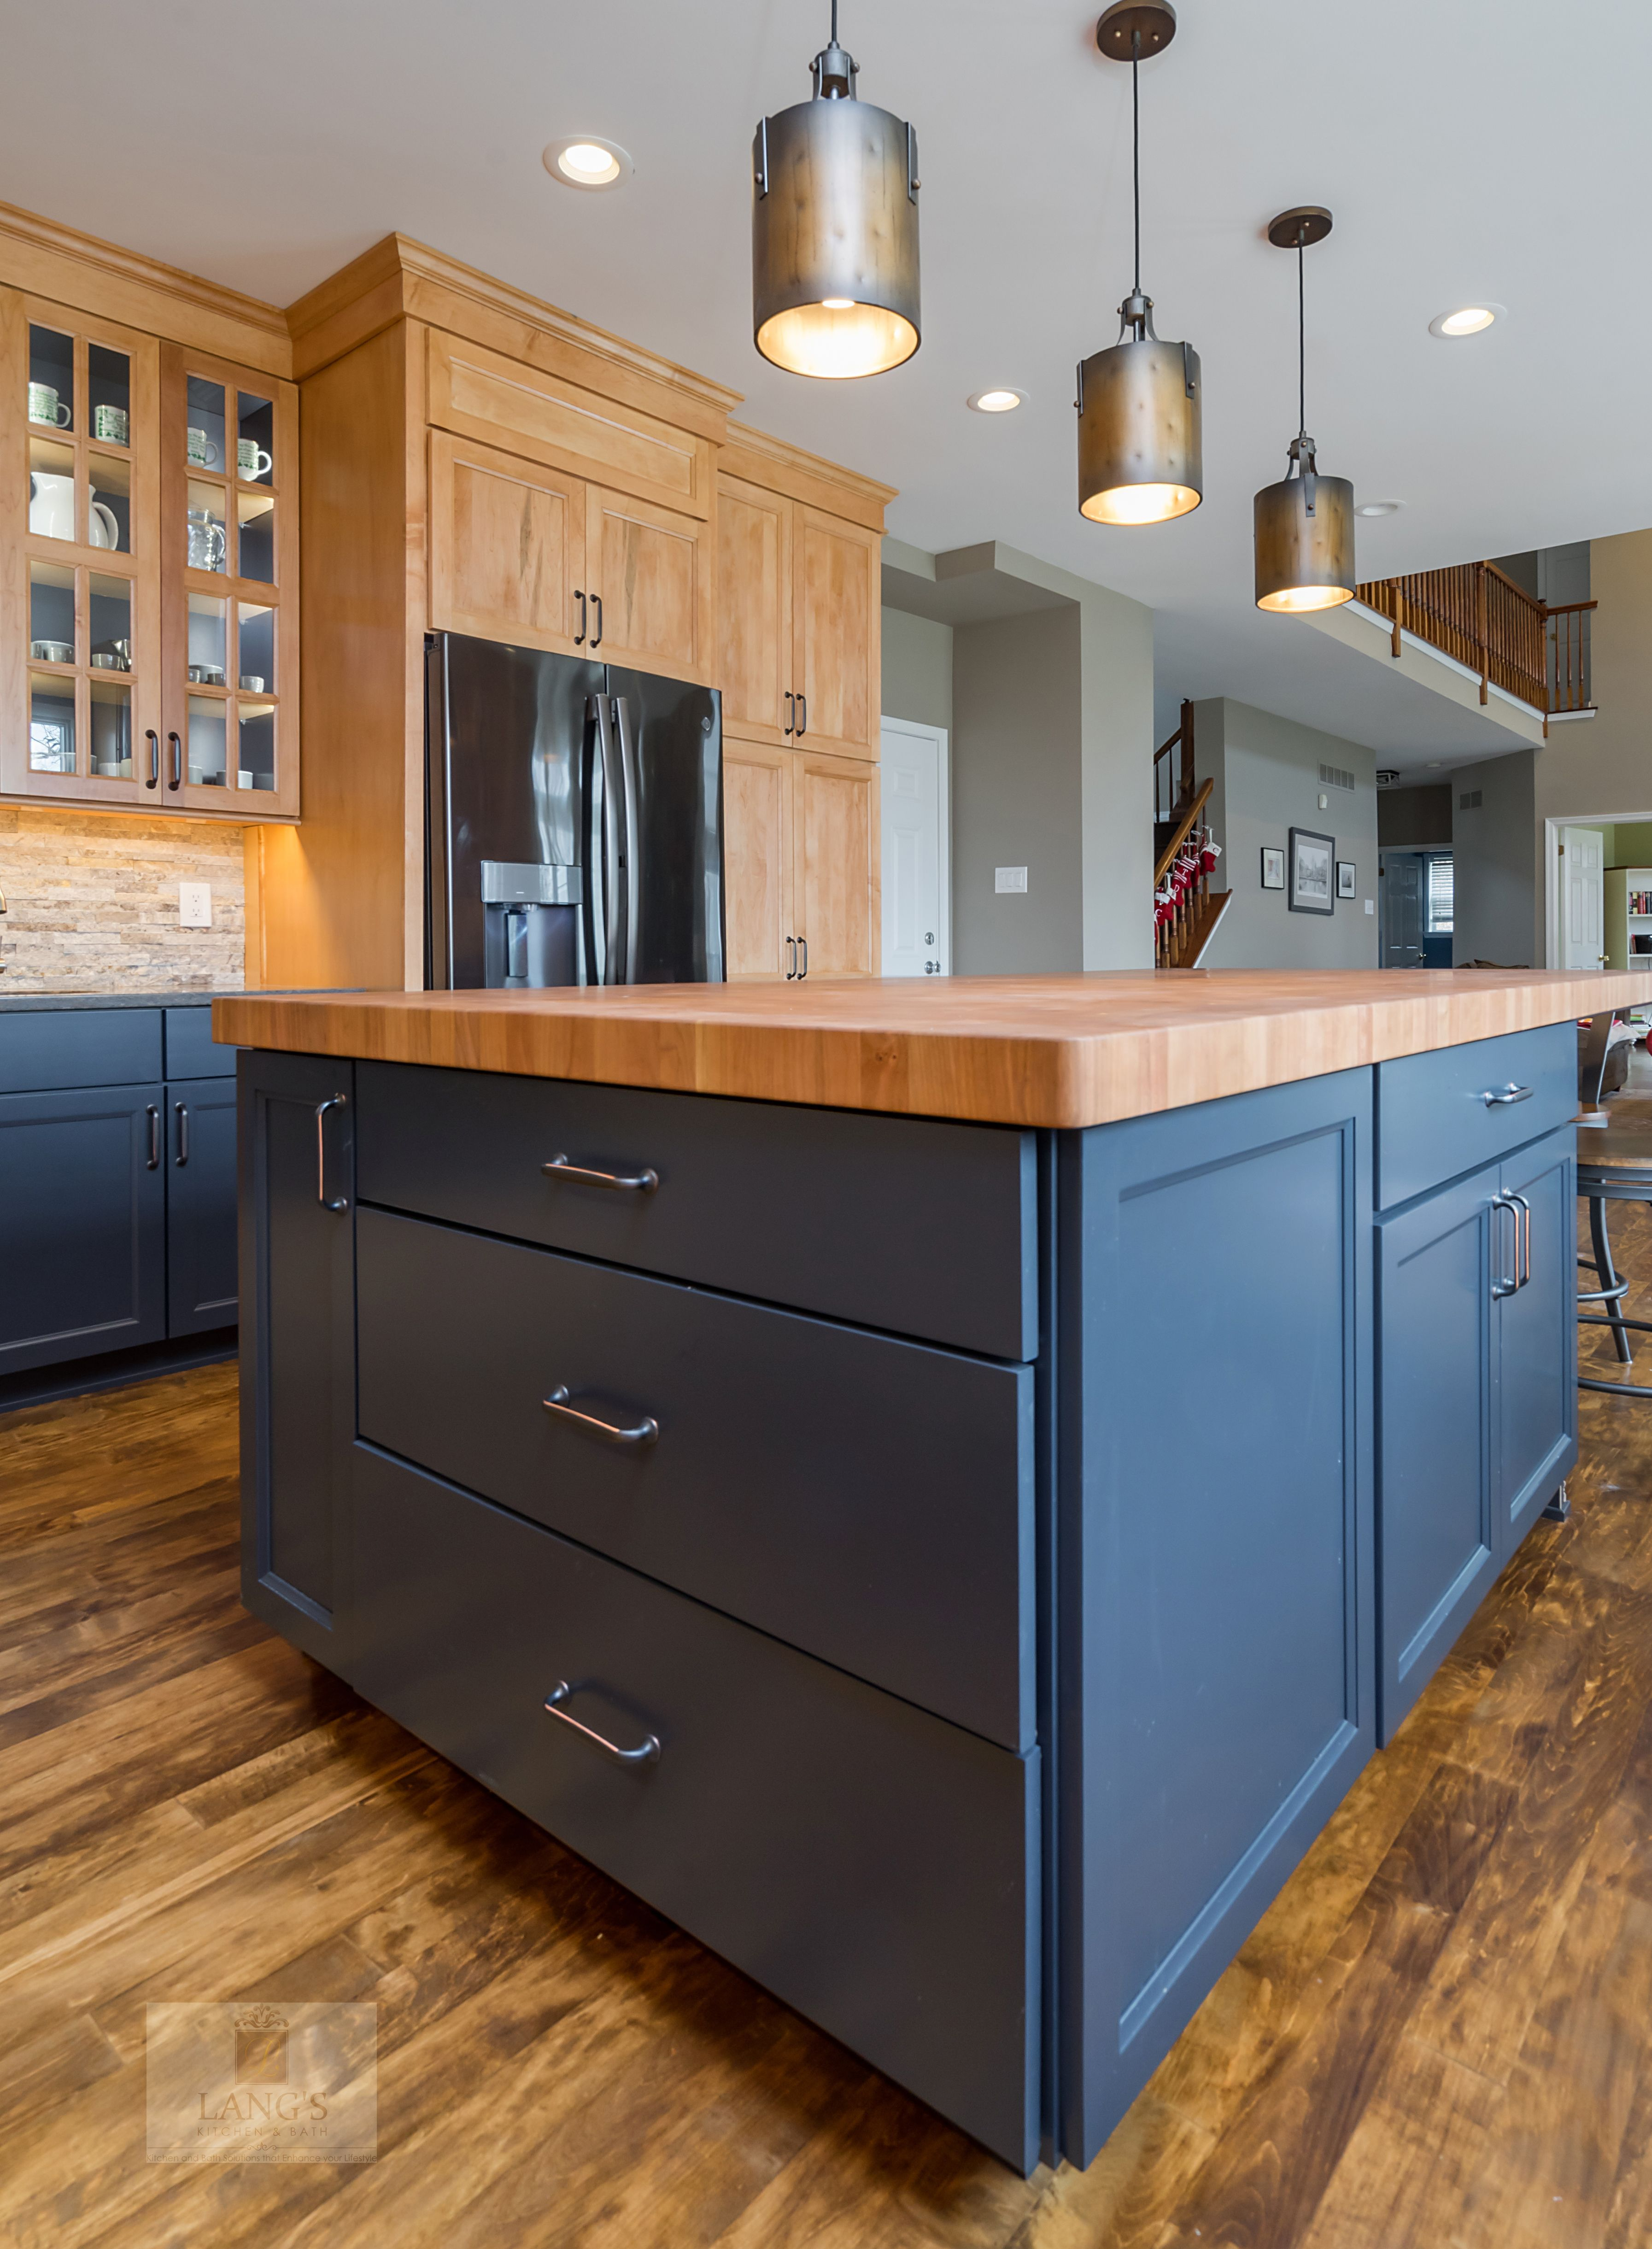 This Amazing Traditional Kitchen Design In Yardley Pa Incorporates Medium Wood Traditional Kitchen Design Simple Kitchen Design Kitchen Design Examples